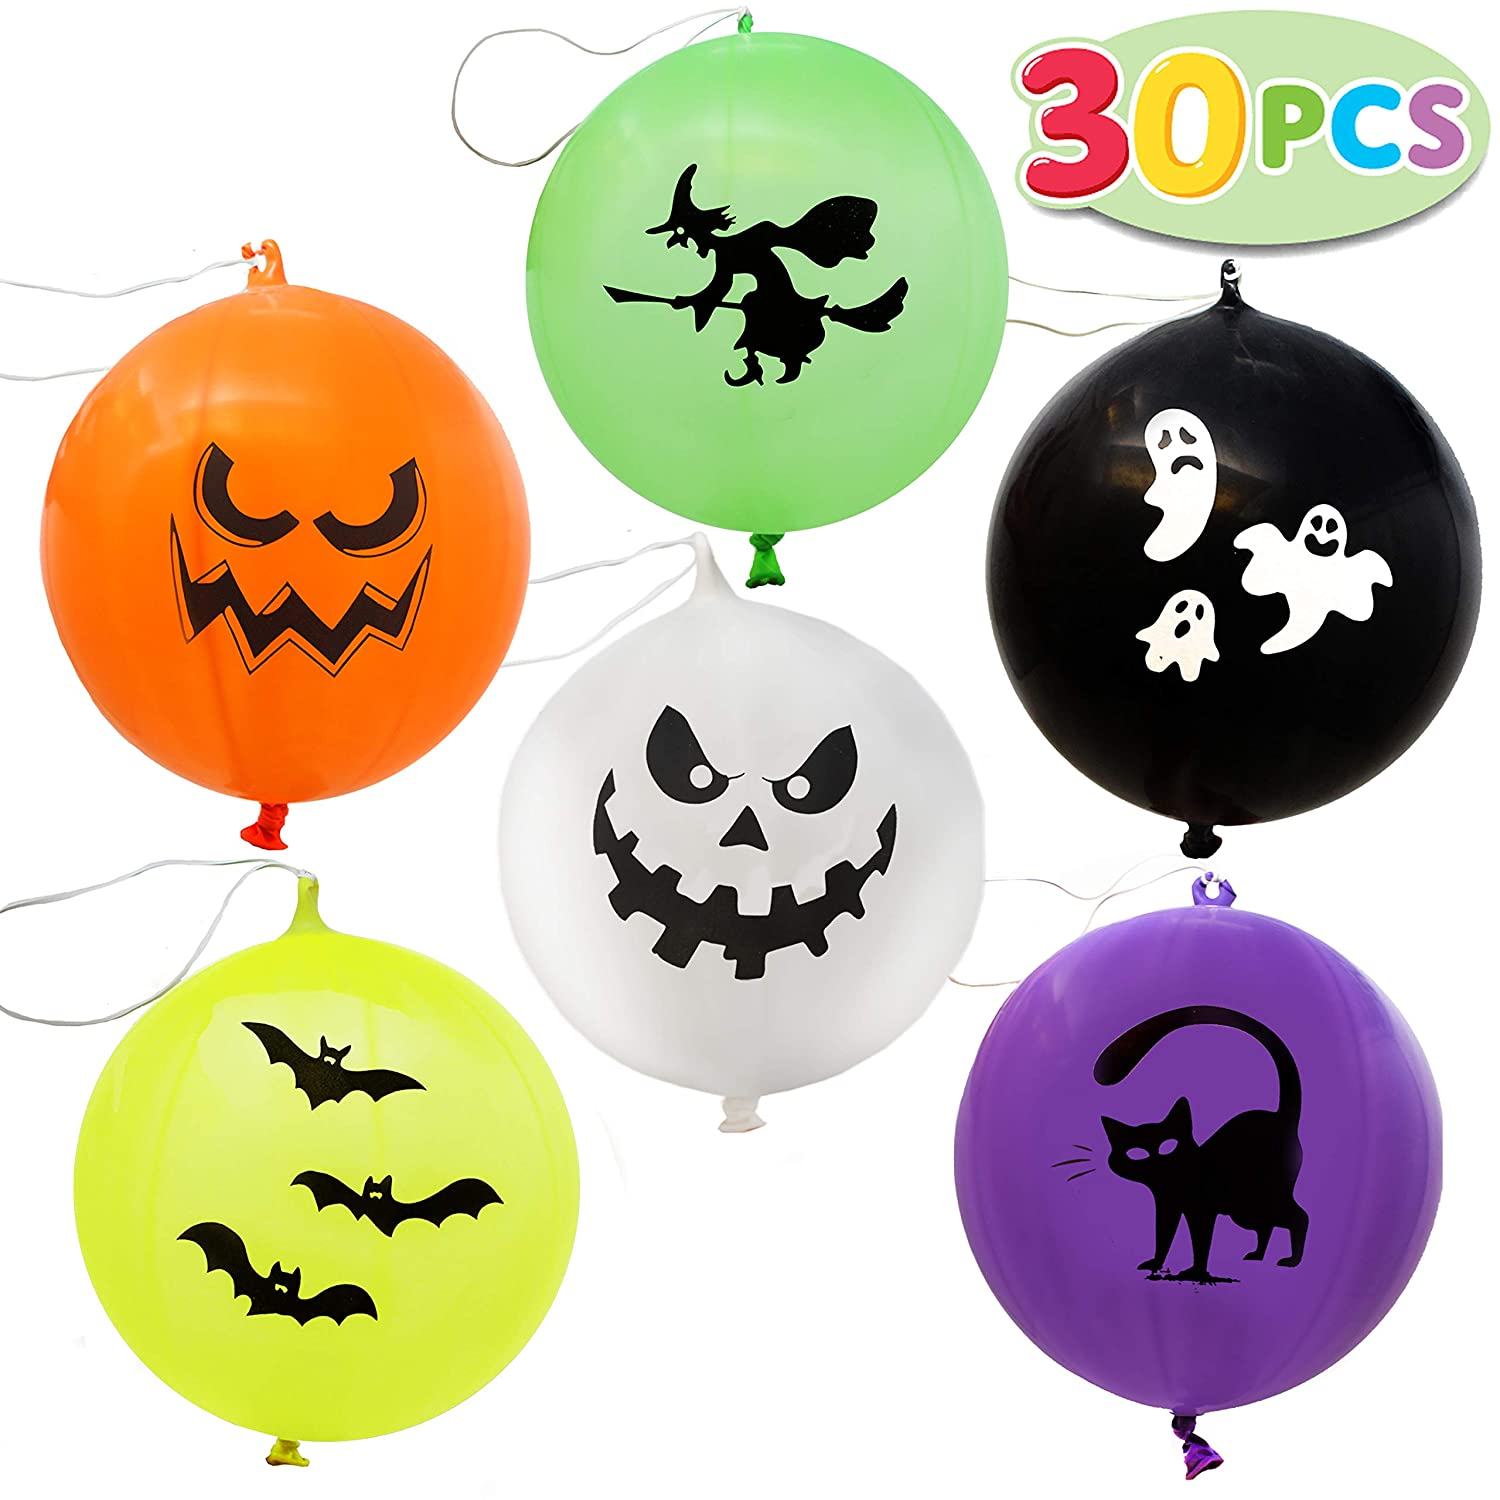 30 Pieces Halloween Mega Punch Balloons for Halloween Punching Balloon Party Favor Supplies Decorations, Prize Punch Game Rewards, Trick or Treat Toys, School Classroom Game, Kids Giveaway Goodie Joyin Inc